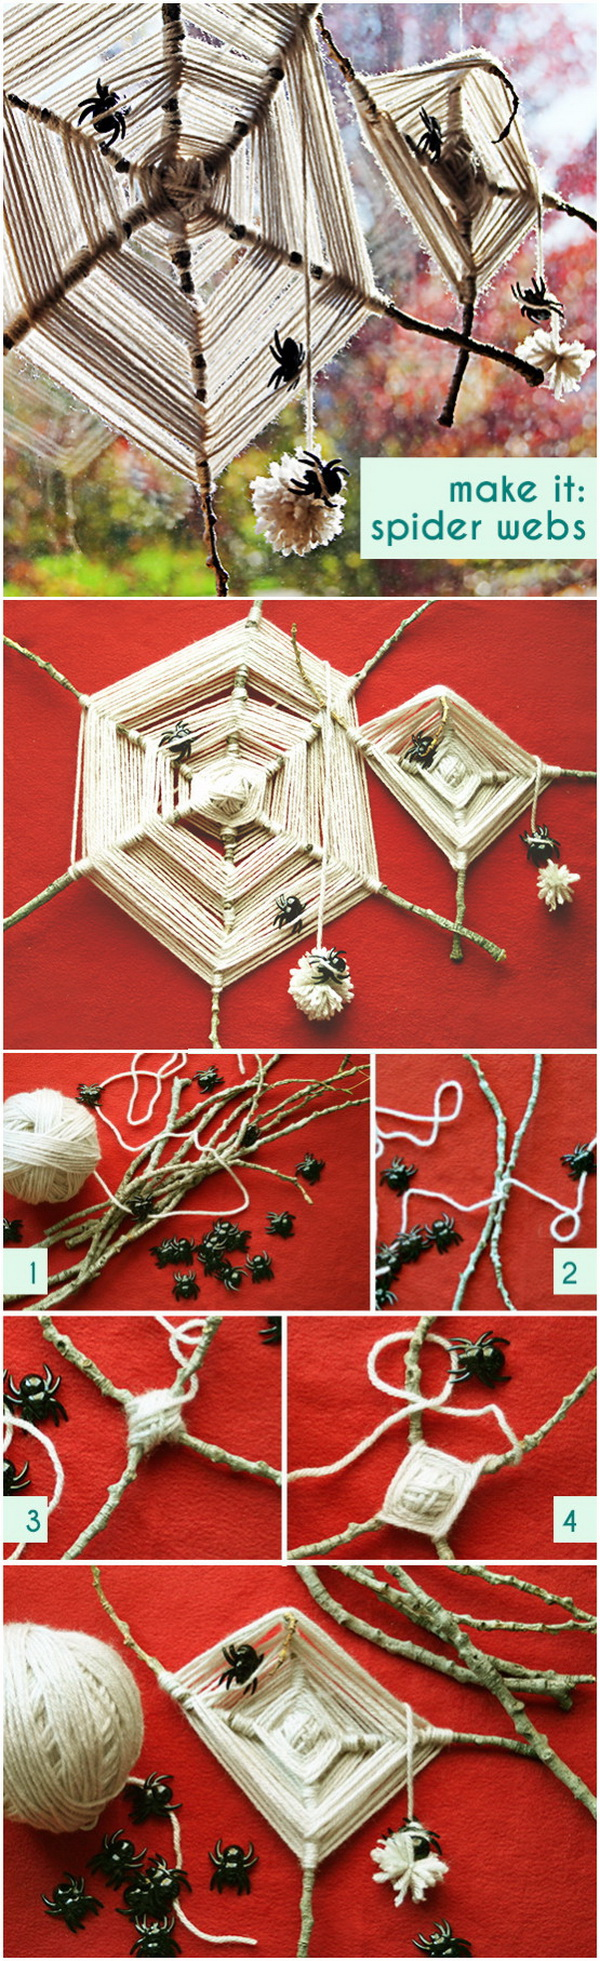 Handmade Spider Webs. Whip up some stylish & spooky decor for decoration with yarn, sticks, & spider webs this Halloween.